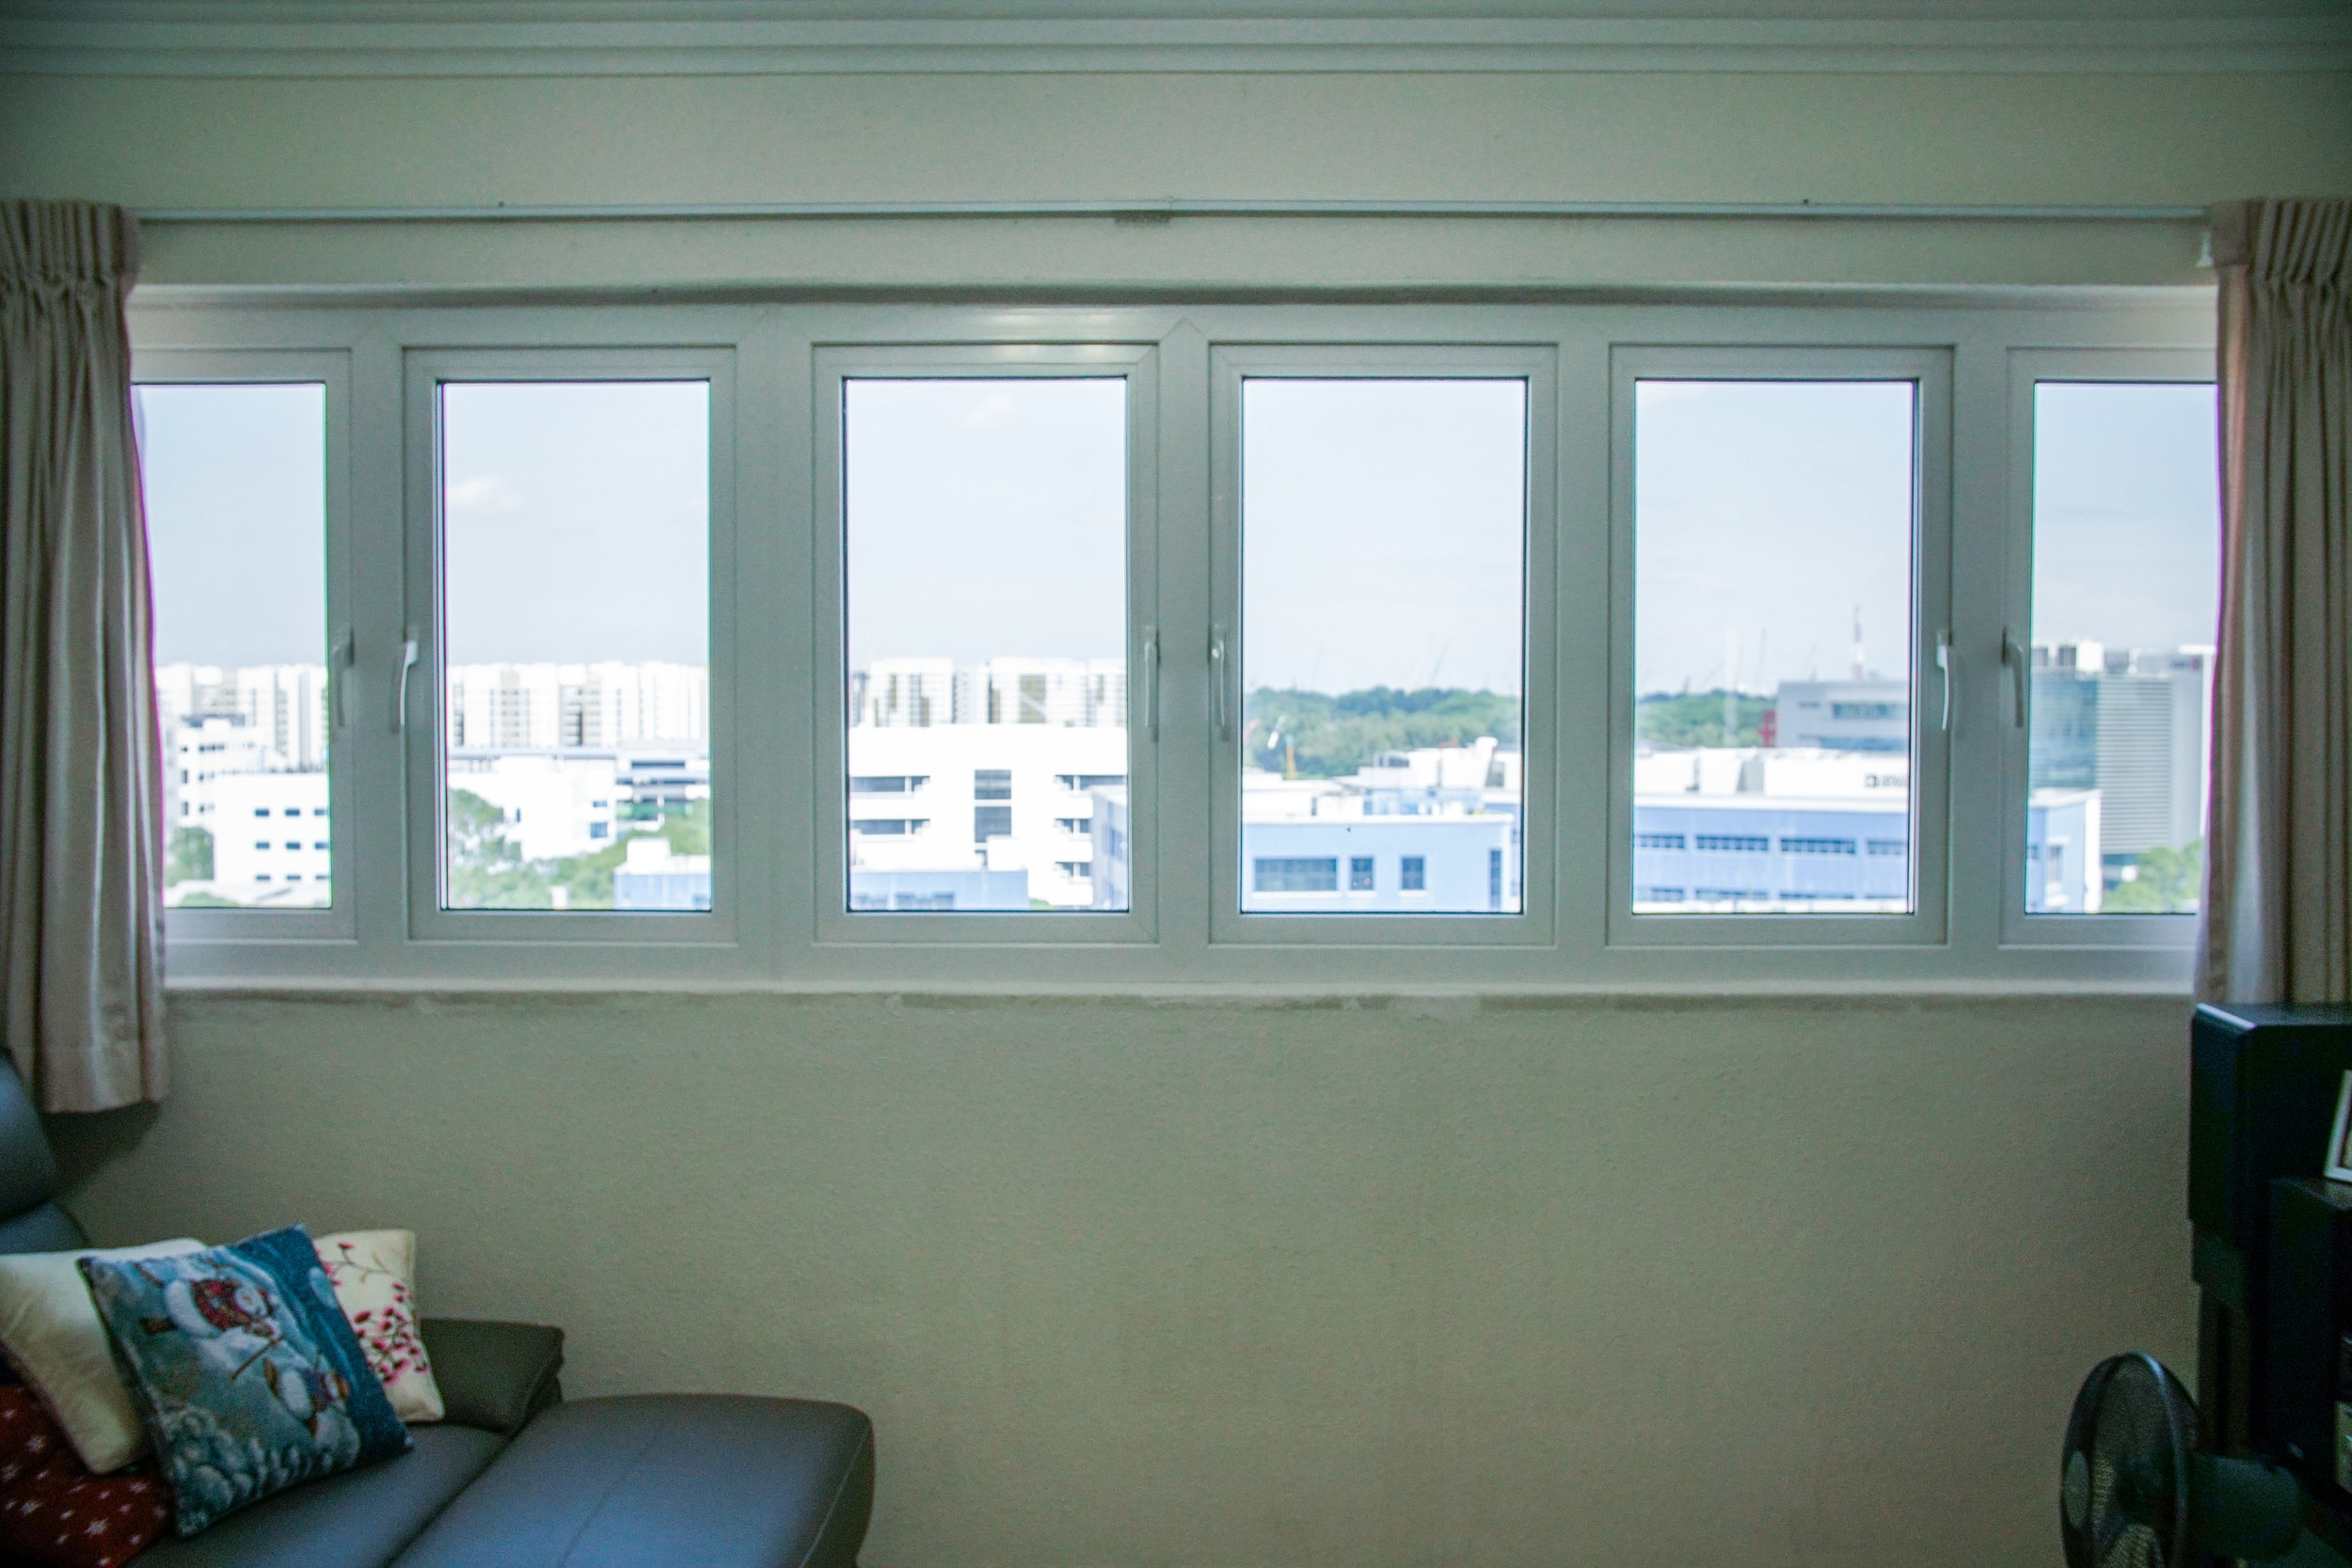 soundproof windows-20.jpg